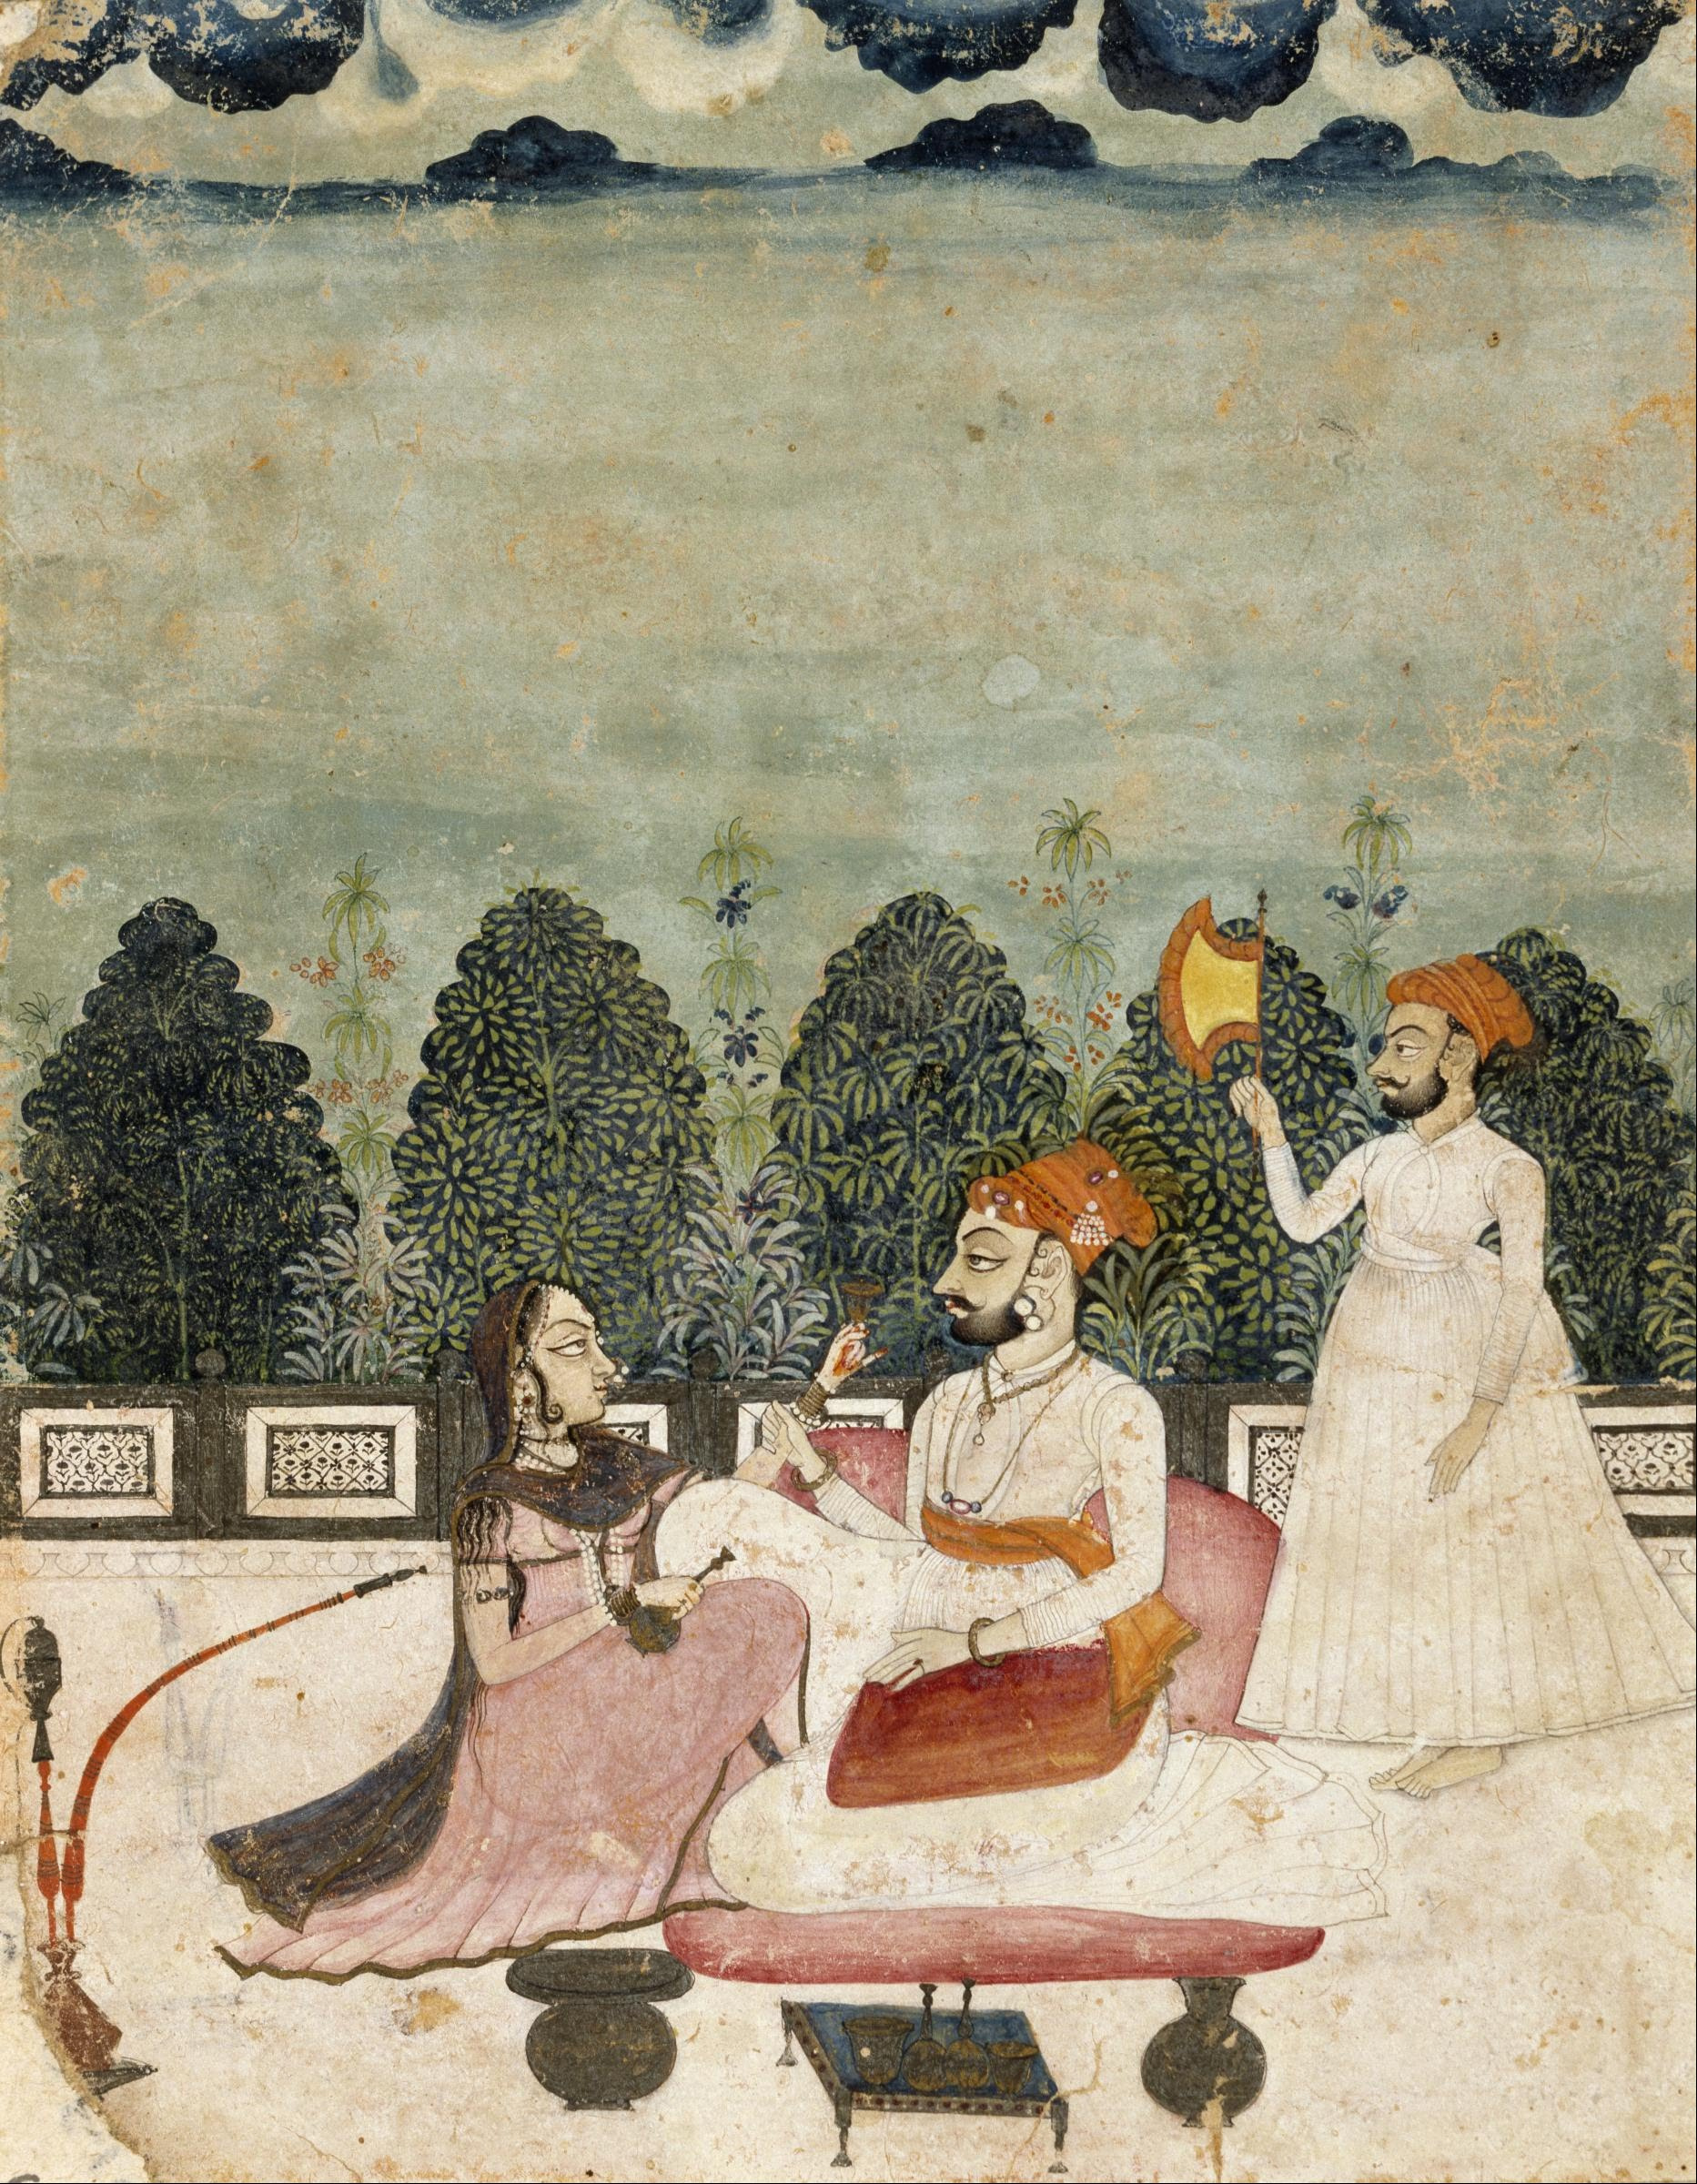 Fileunknown Indo Persian Untitled Two Men And Woman On Terrace